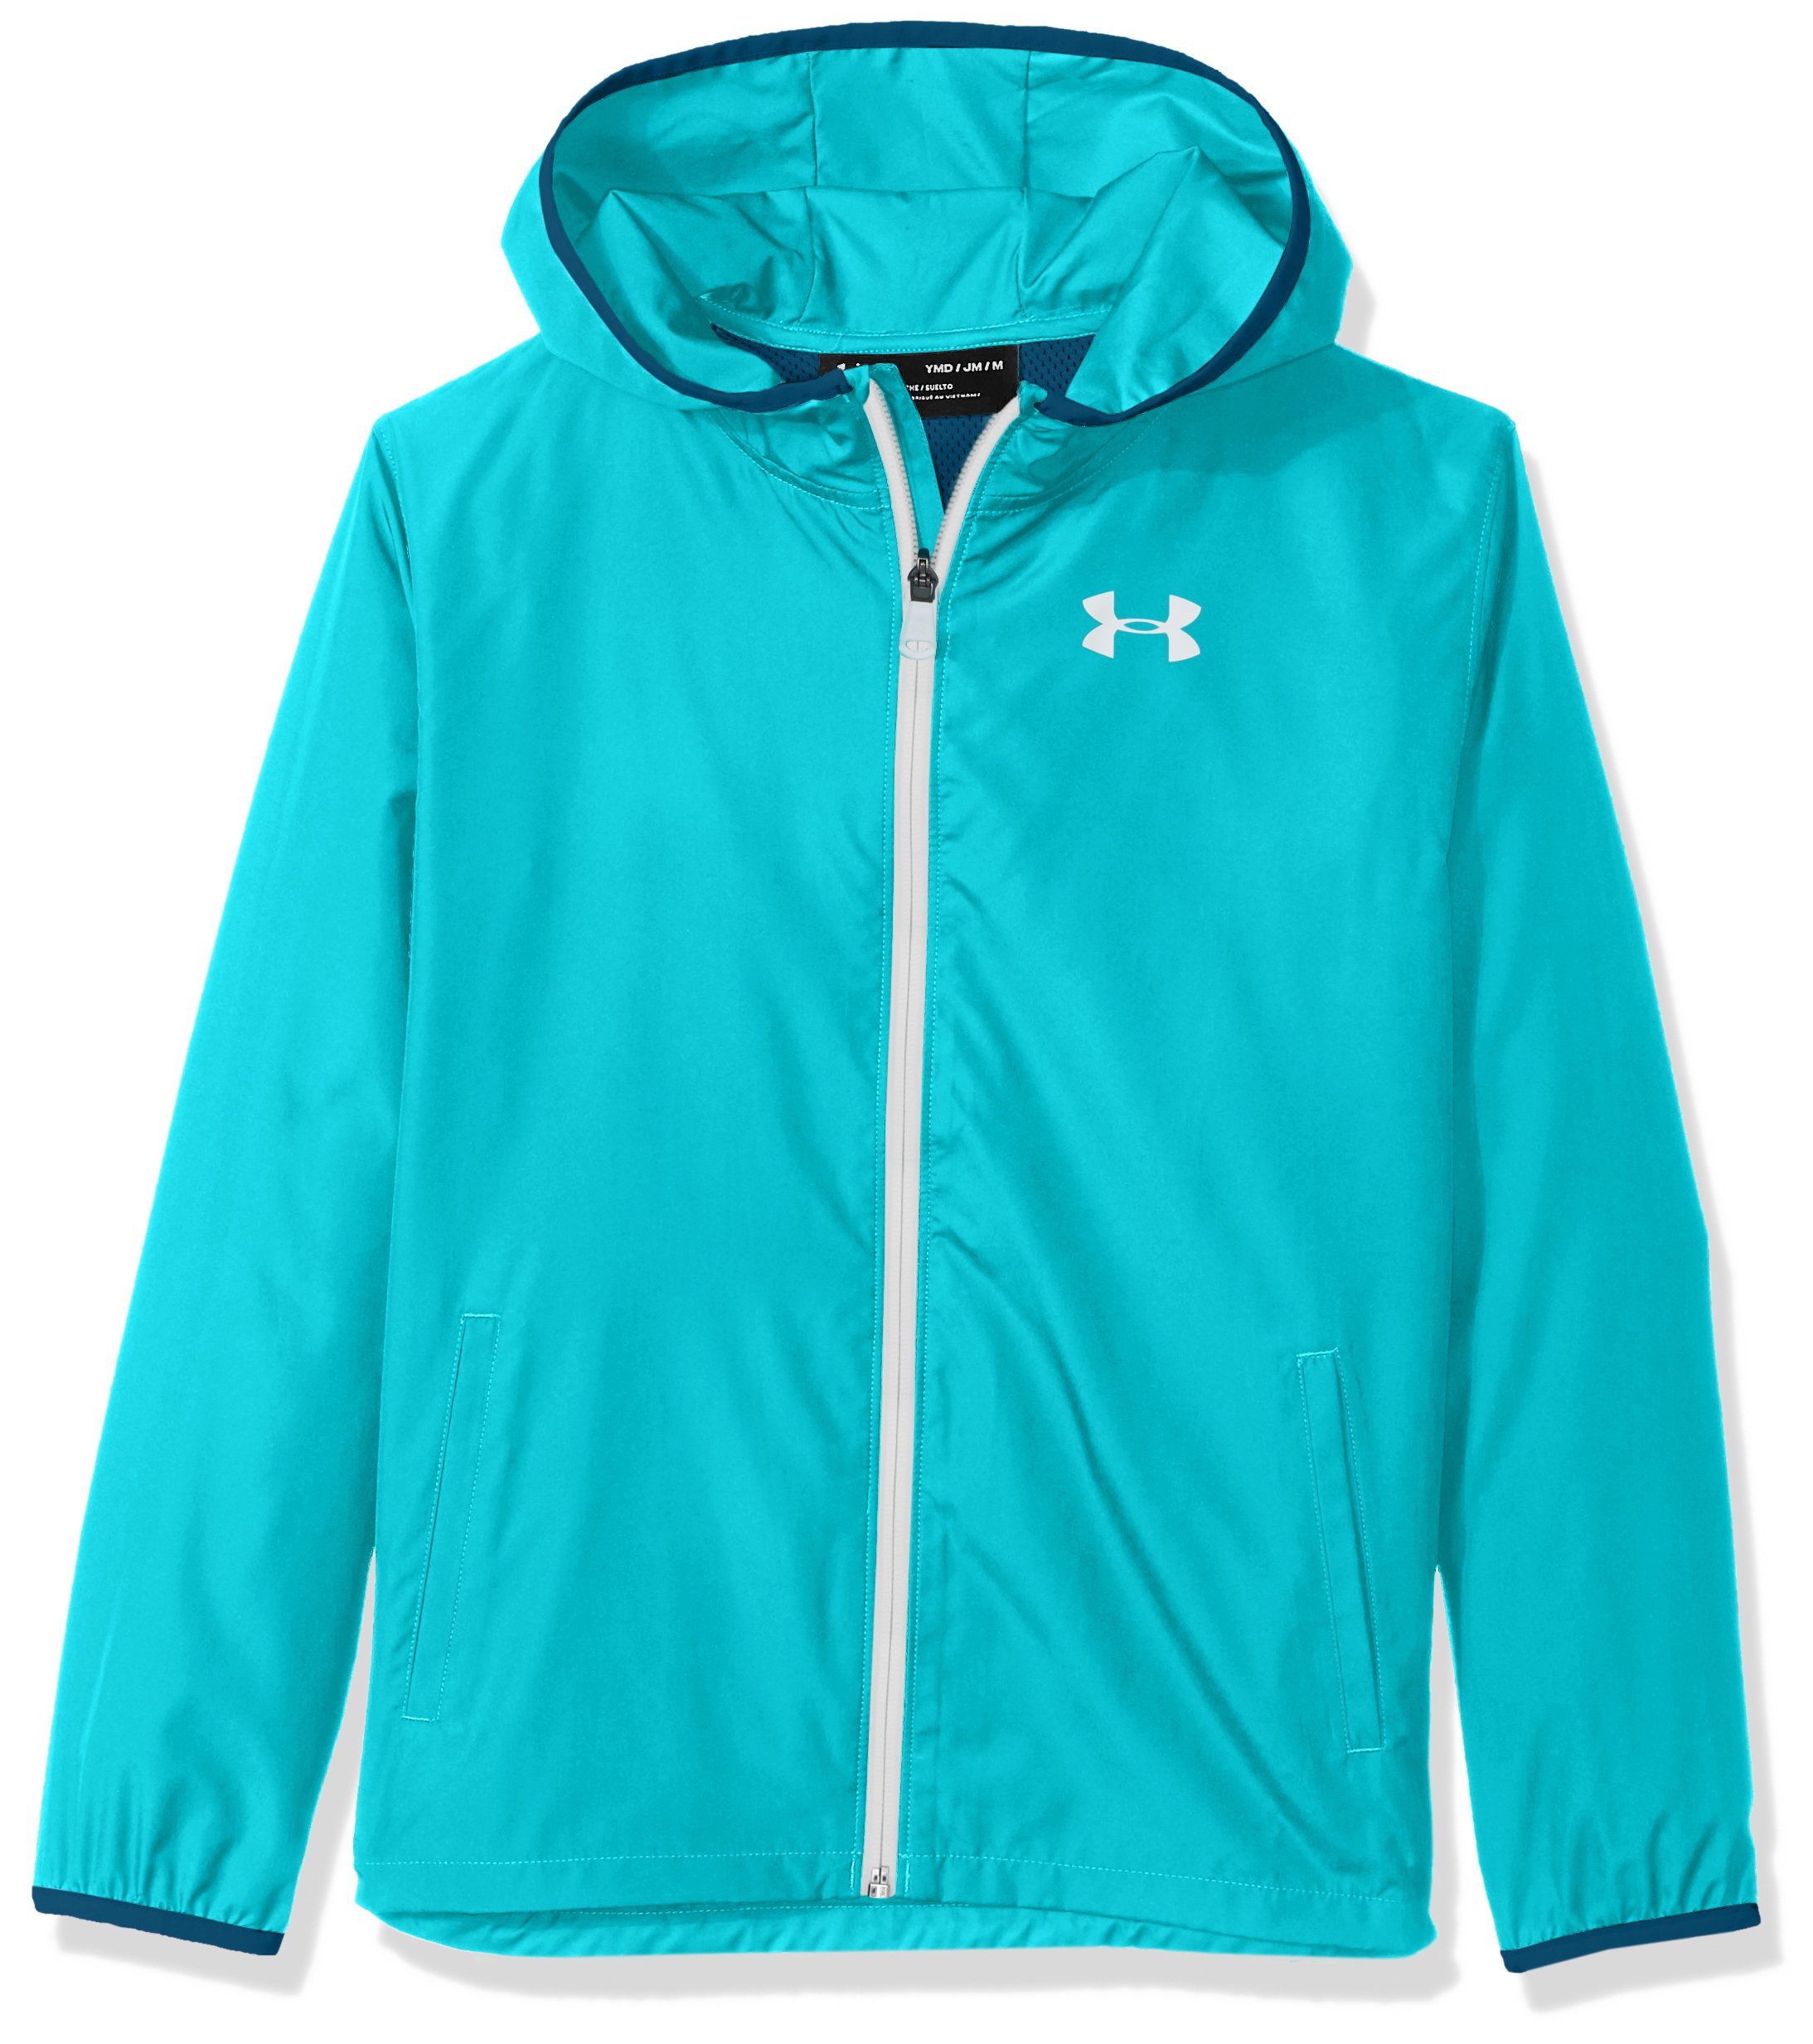 Under Armour Girls' Sackpack Jacket, Teal Punch (594)/White, Youth Medium by Under Armour